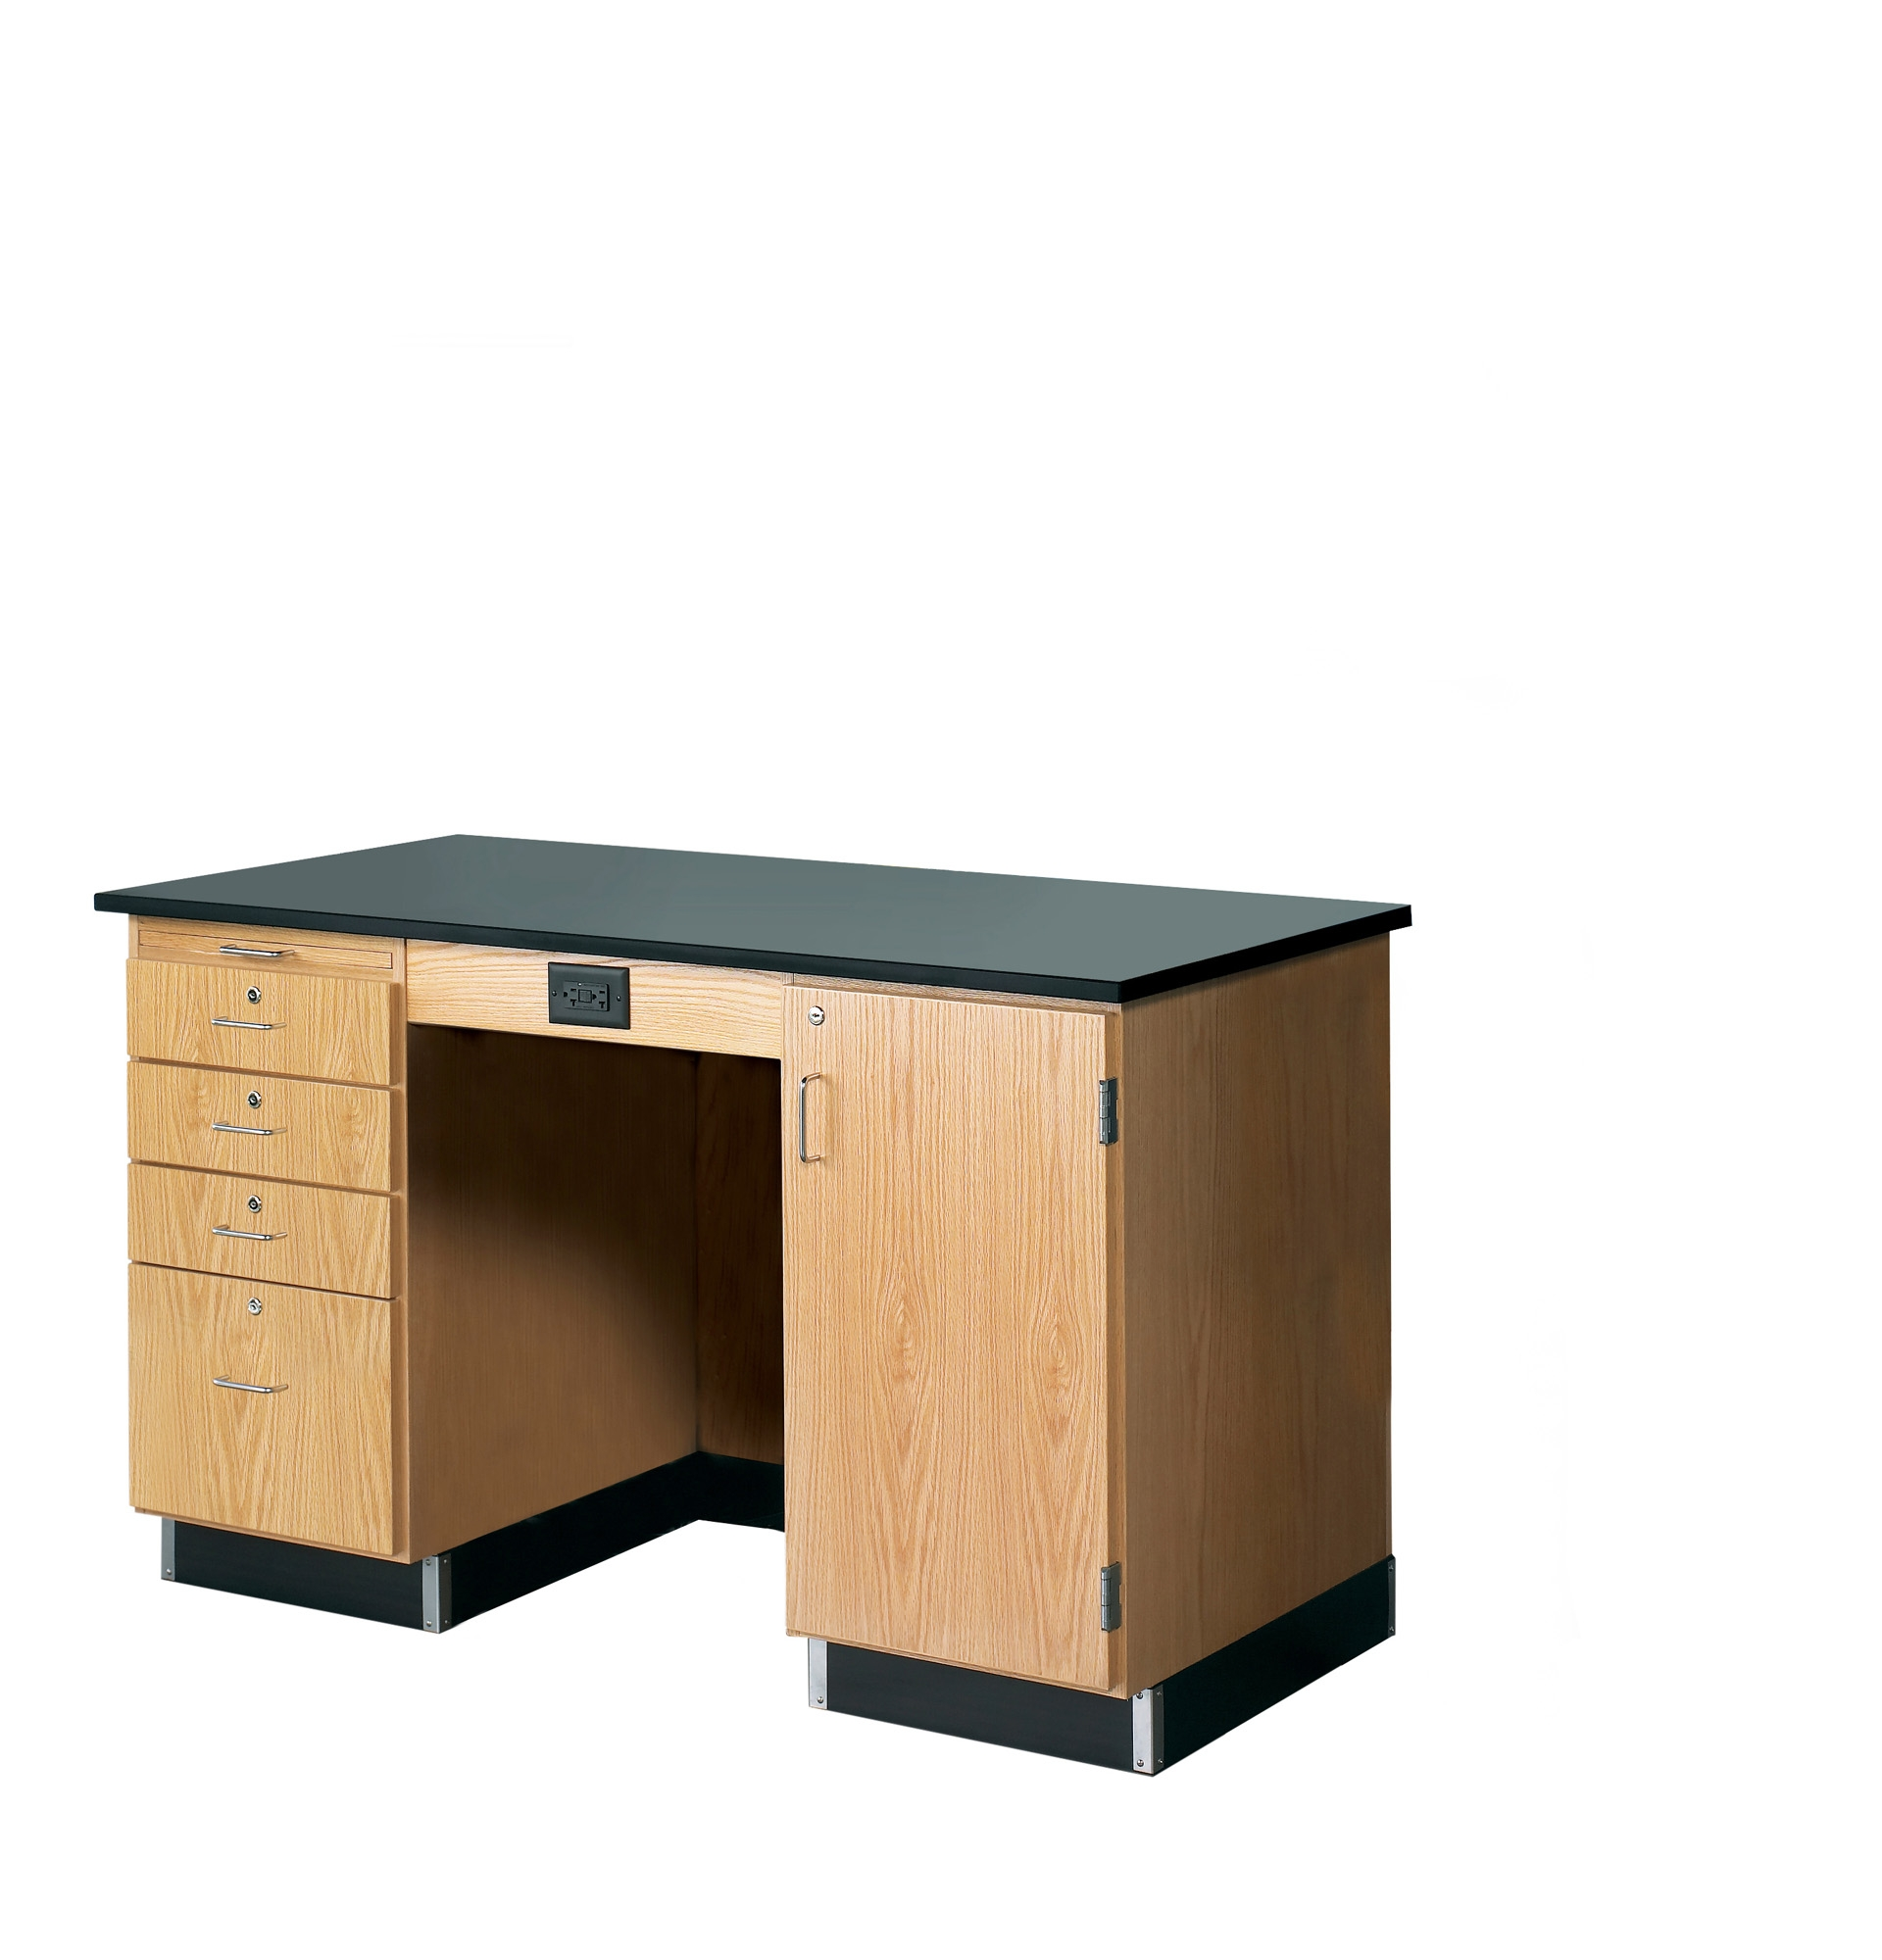 Diversified Woodcrafts 5' Instructor's Desk with Drawers & Cabinet - Epoxy Top